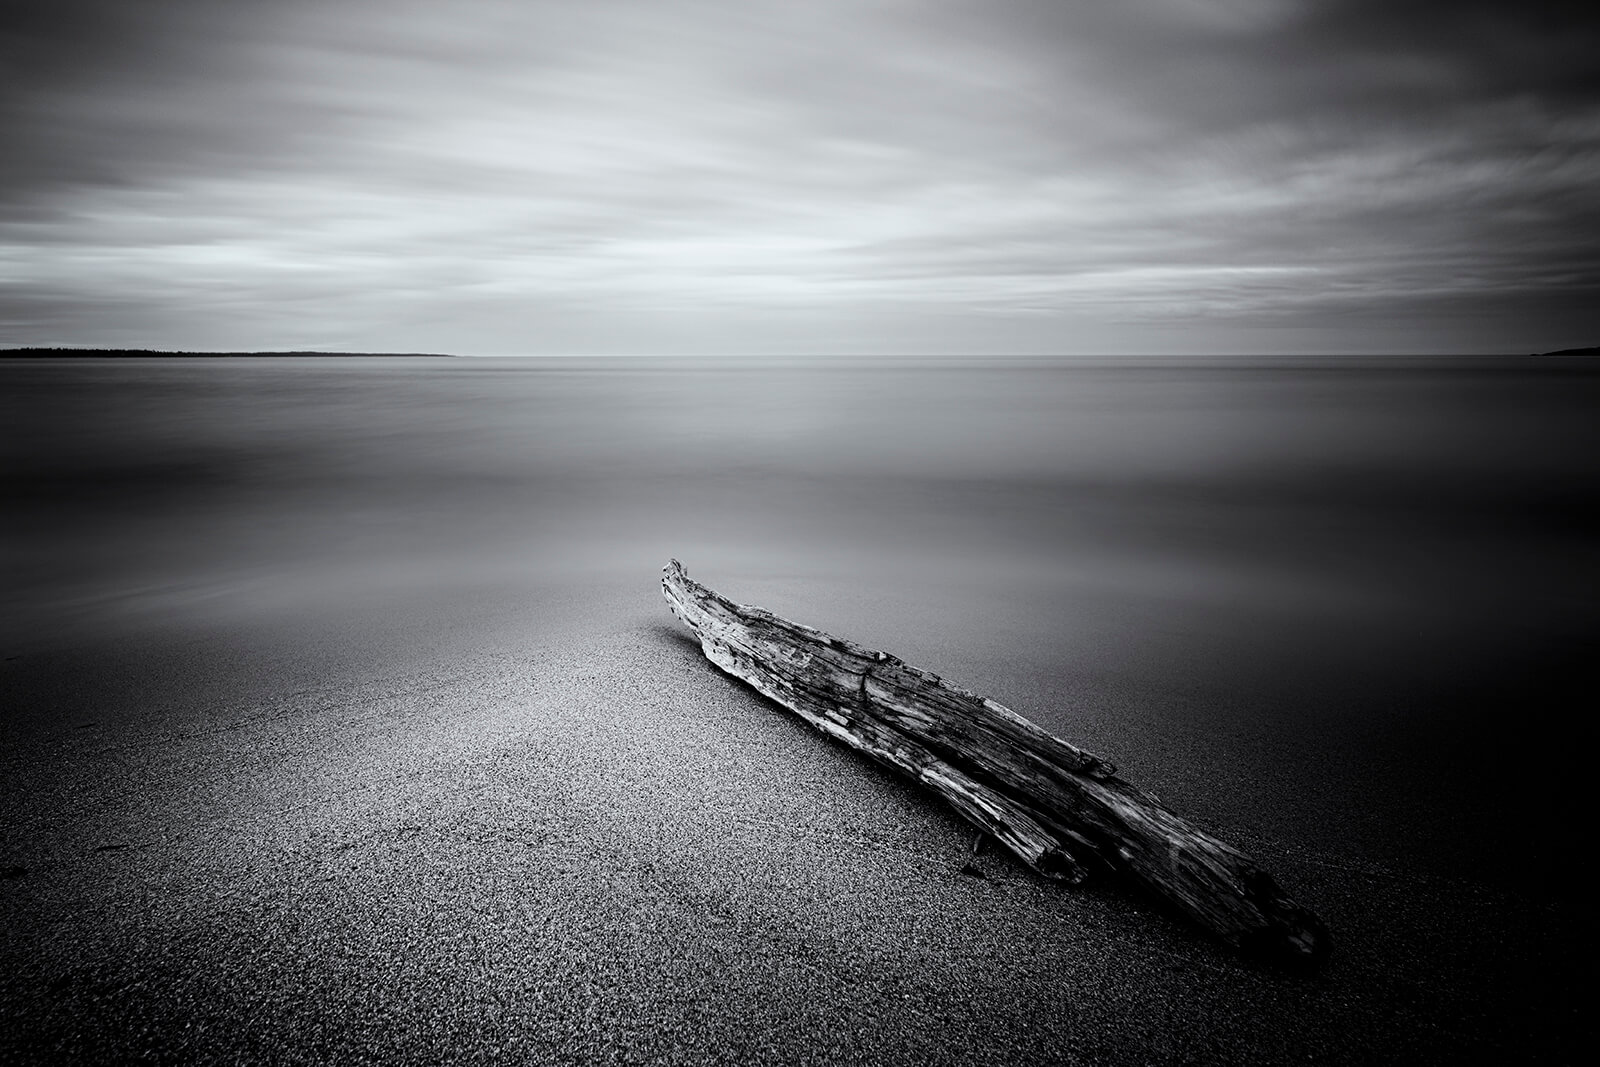 Driftwood on the beach of Salusand, Sweden. Copyright Joakim Jormelin